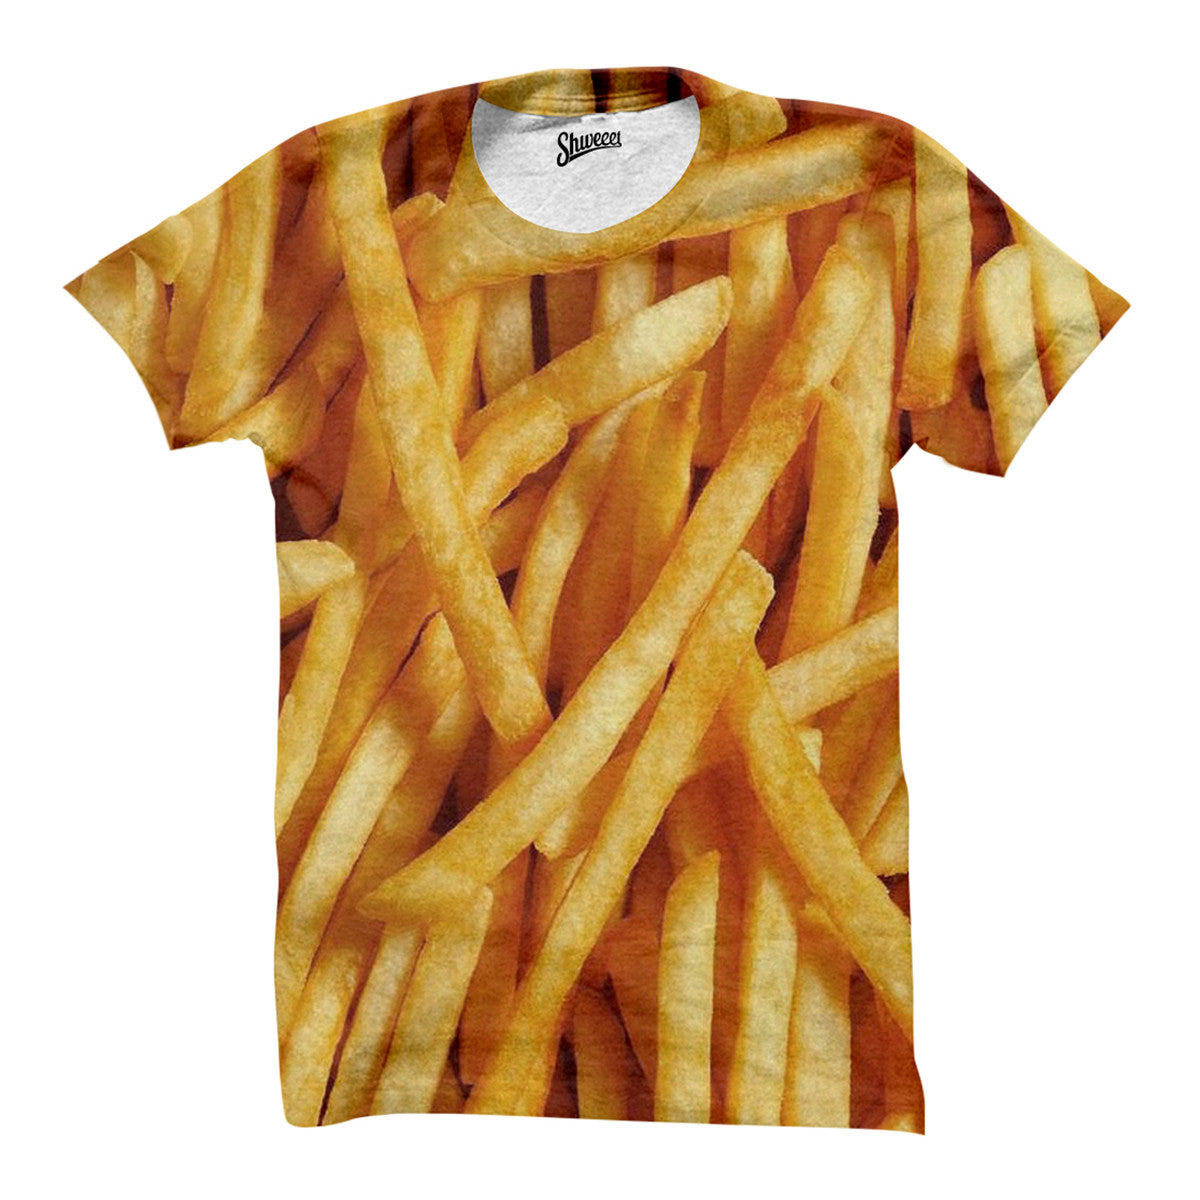 French Fries T shirt